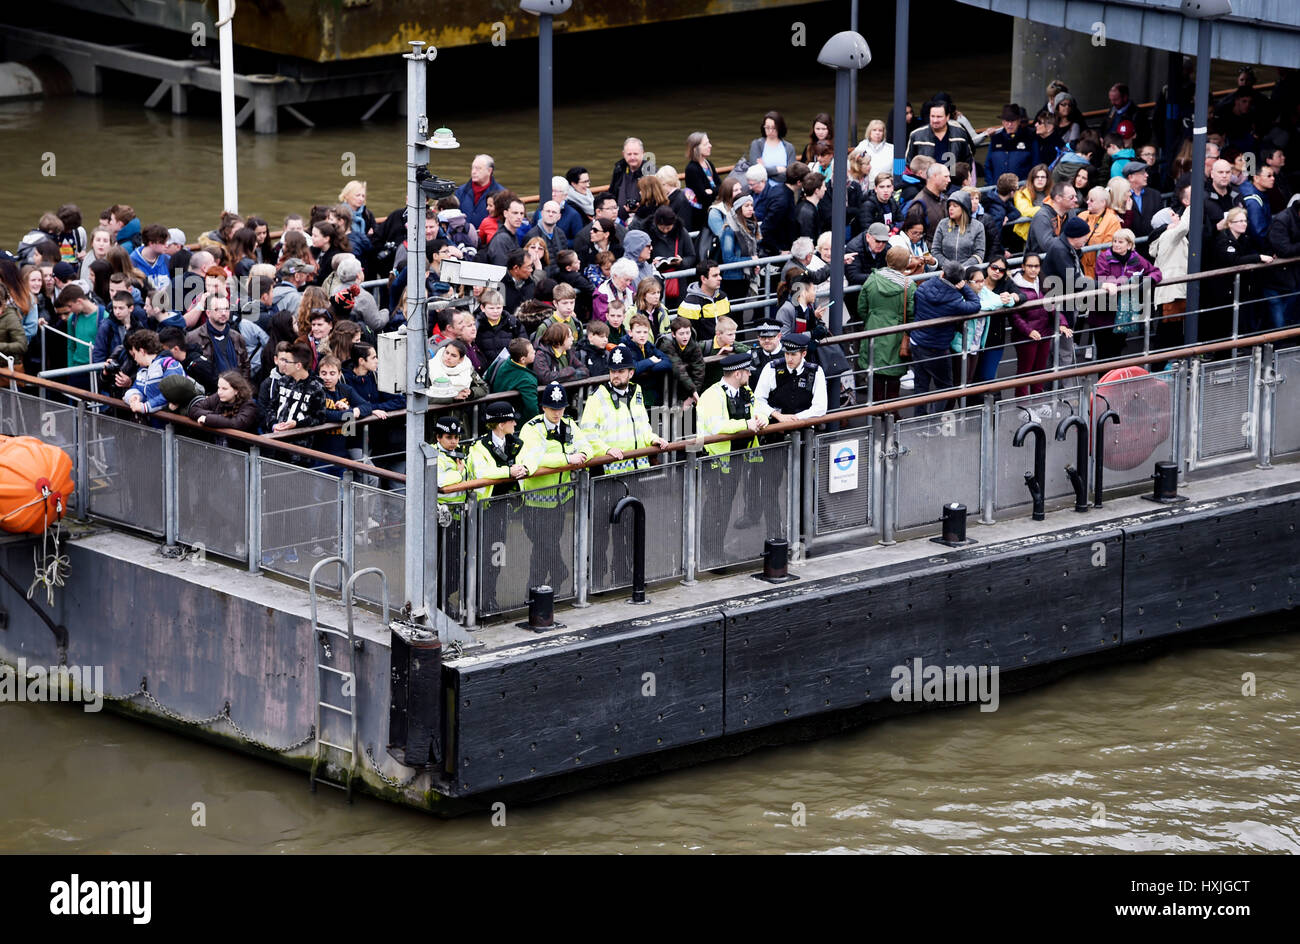 London, UK. 29th Mar, 2017. Police look out over the River Thames by Westminster Bridge today after a reported incident - Stock Image